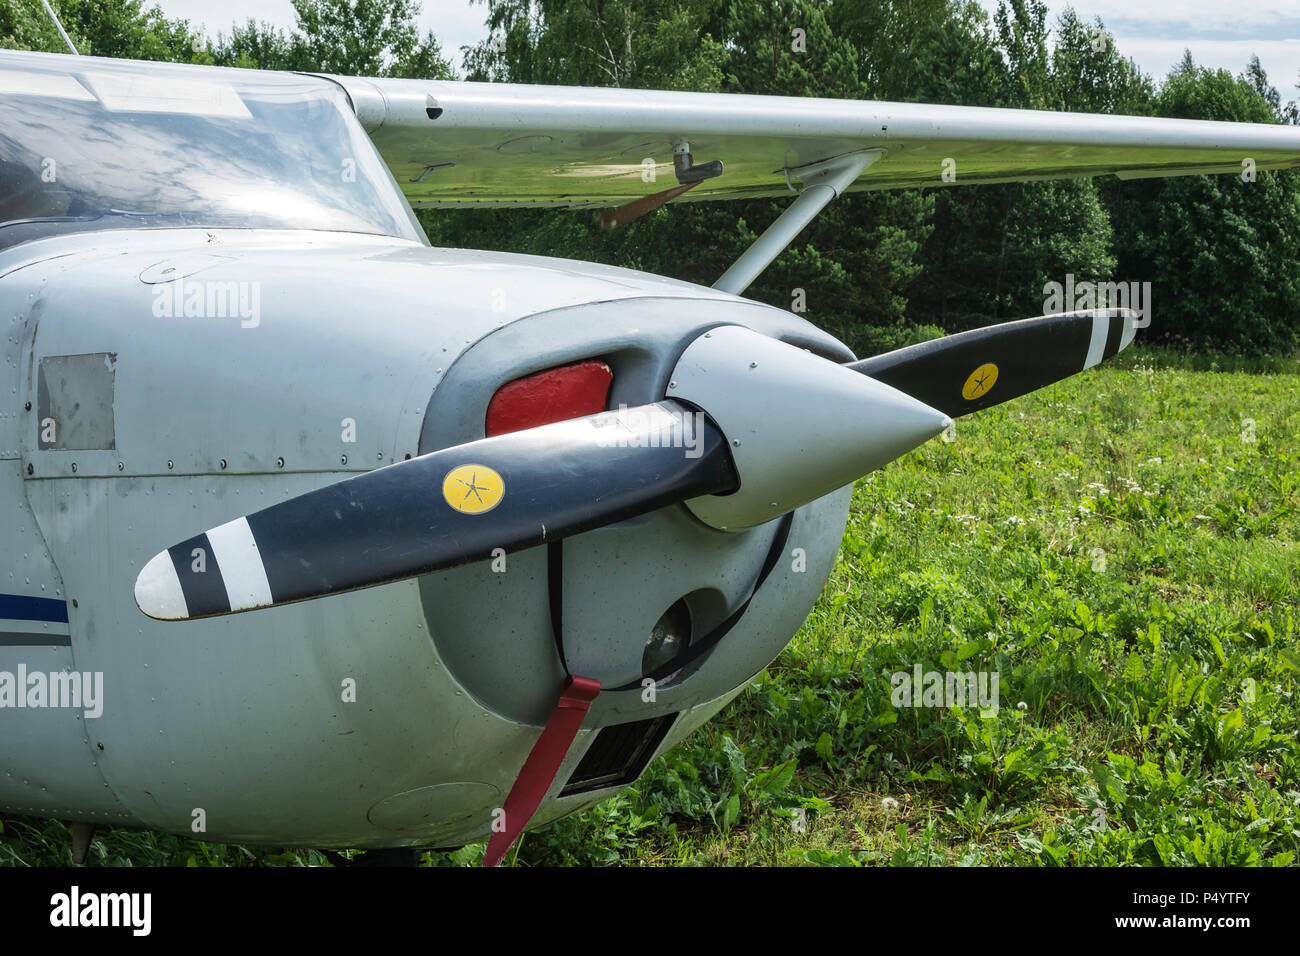 Two-bladed propeller single-engine aircraft close-up - Stock Image